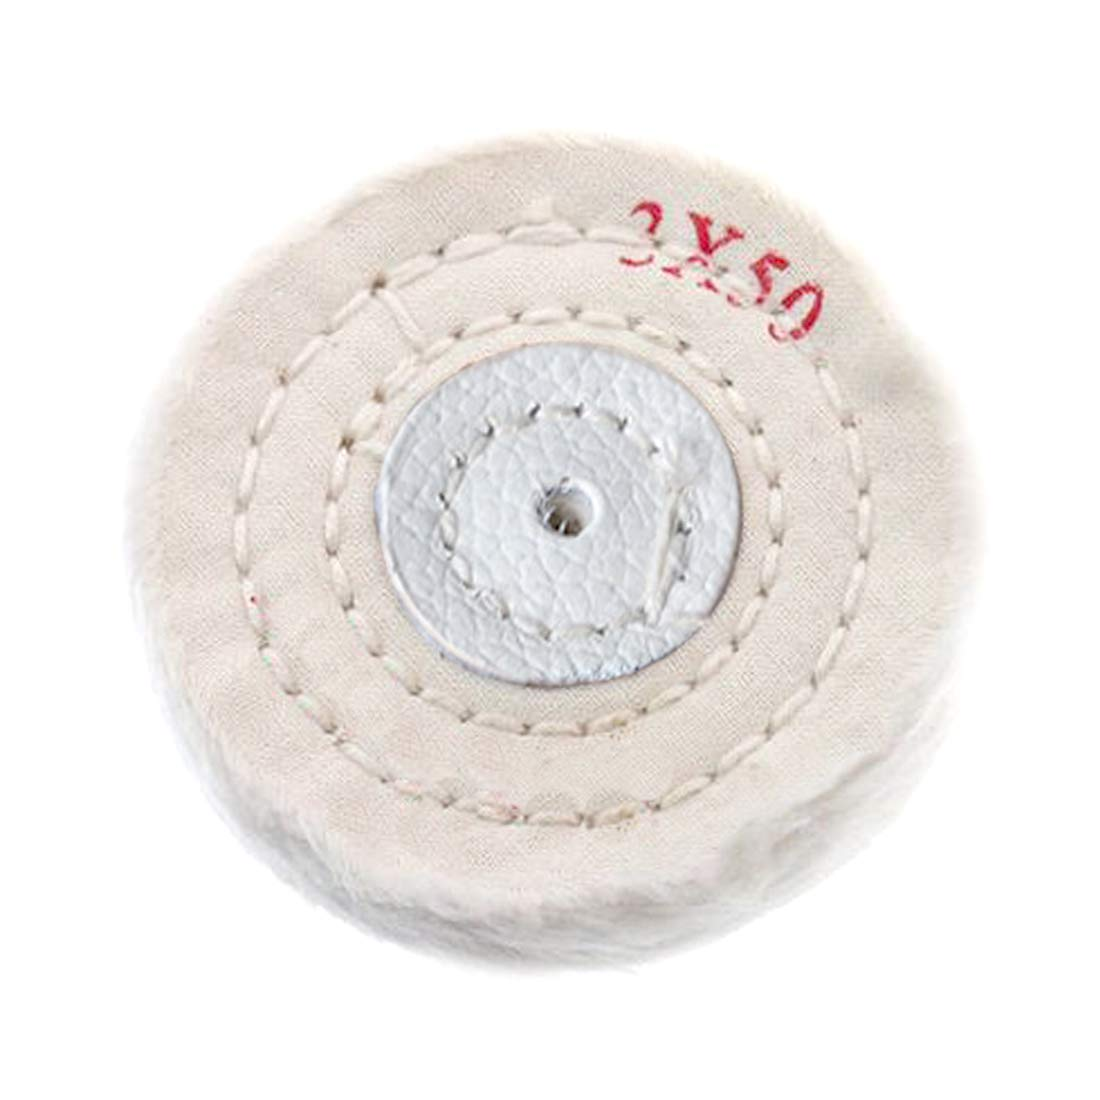 Cotton Polishing Wheel Cloth Buffing Wheel Arbor Buffer Mirror Polish 50 Layers Abrasive Tools 8 Inches 91ai-store